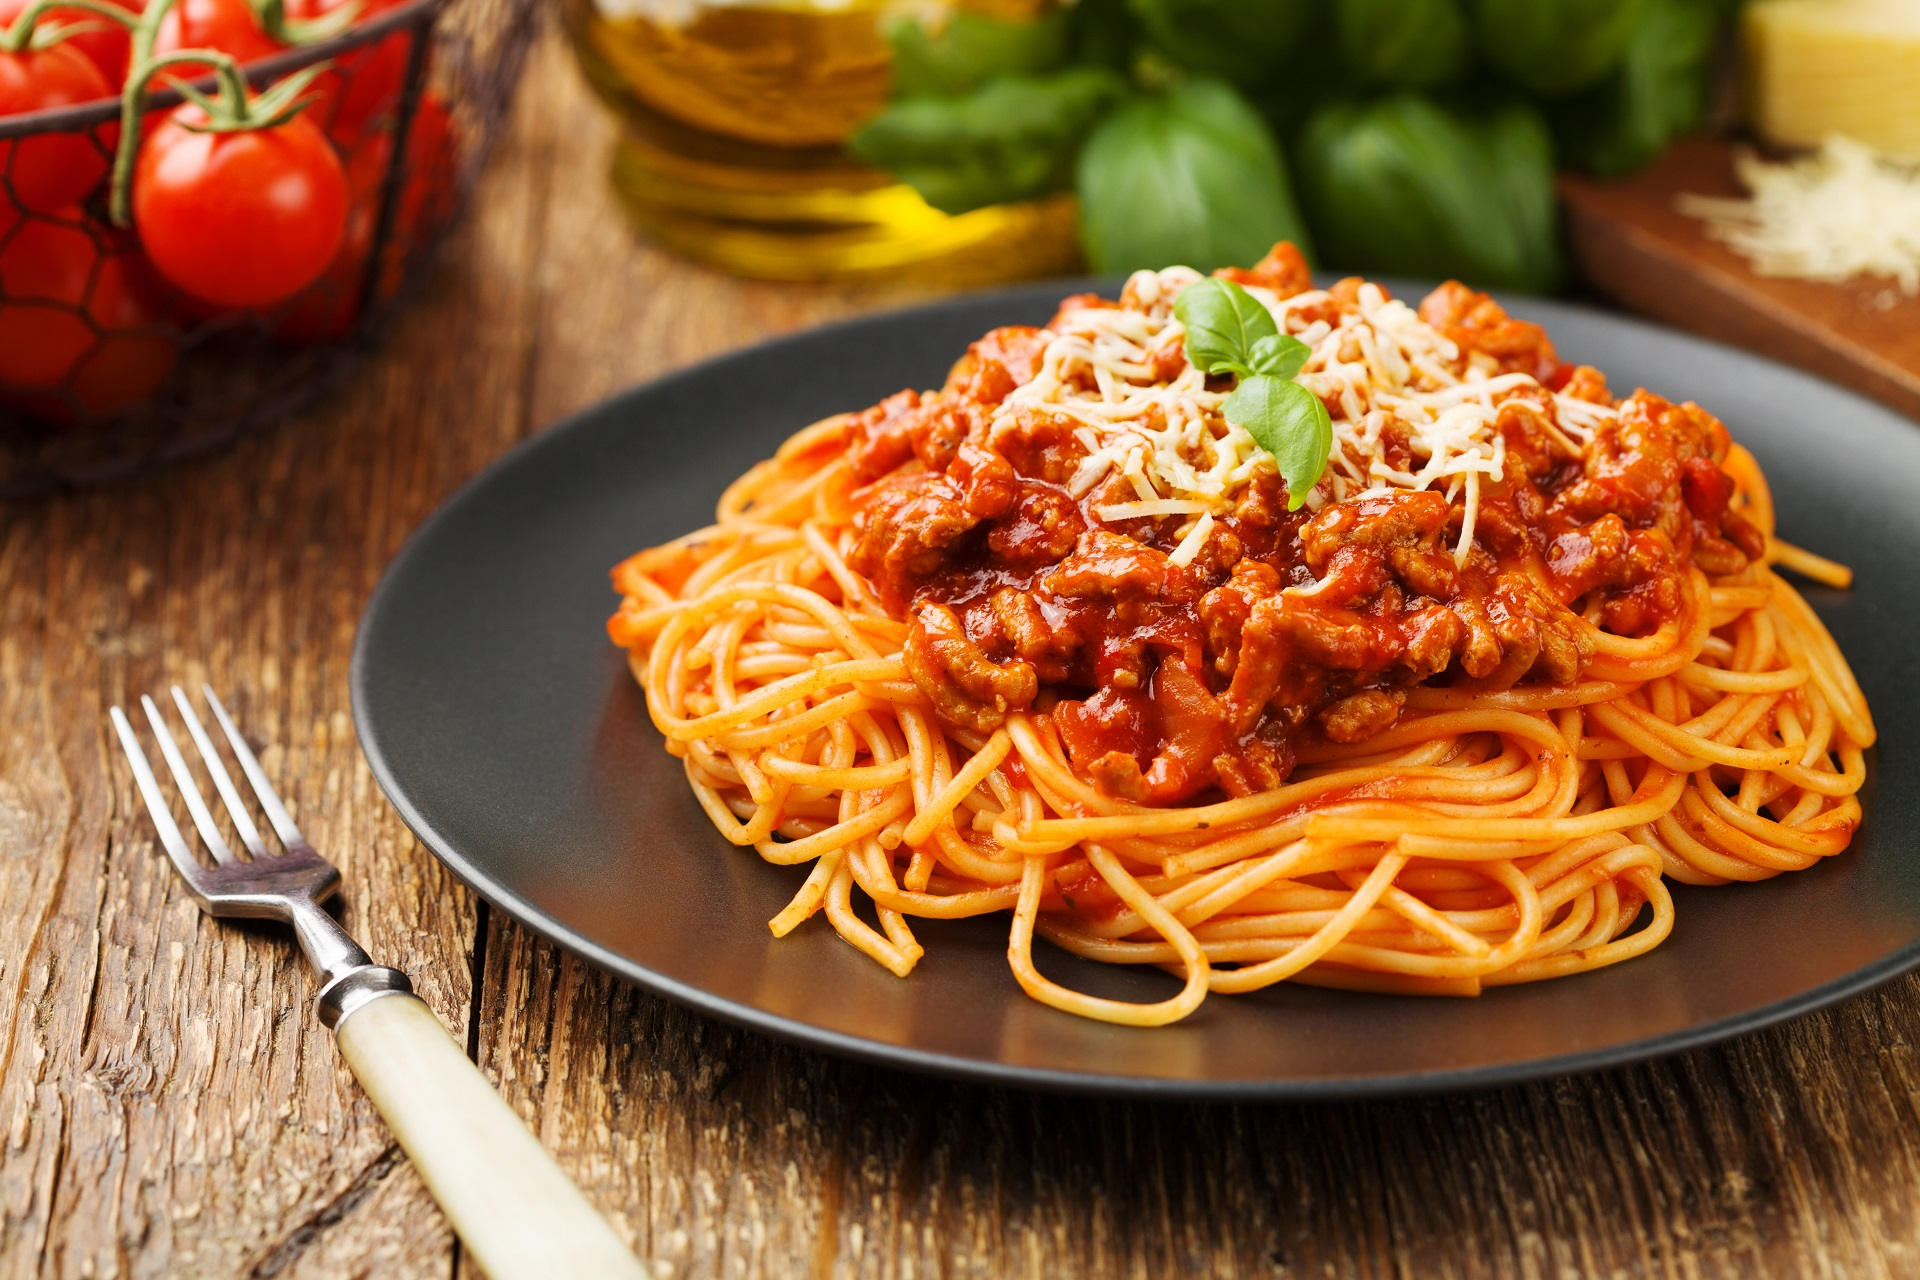 Spaghetti is a type of pasta.